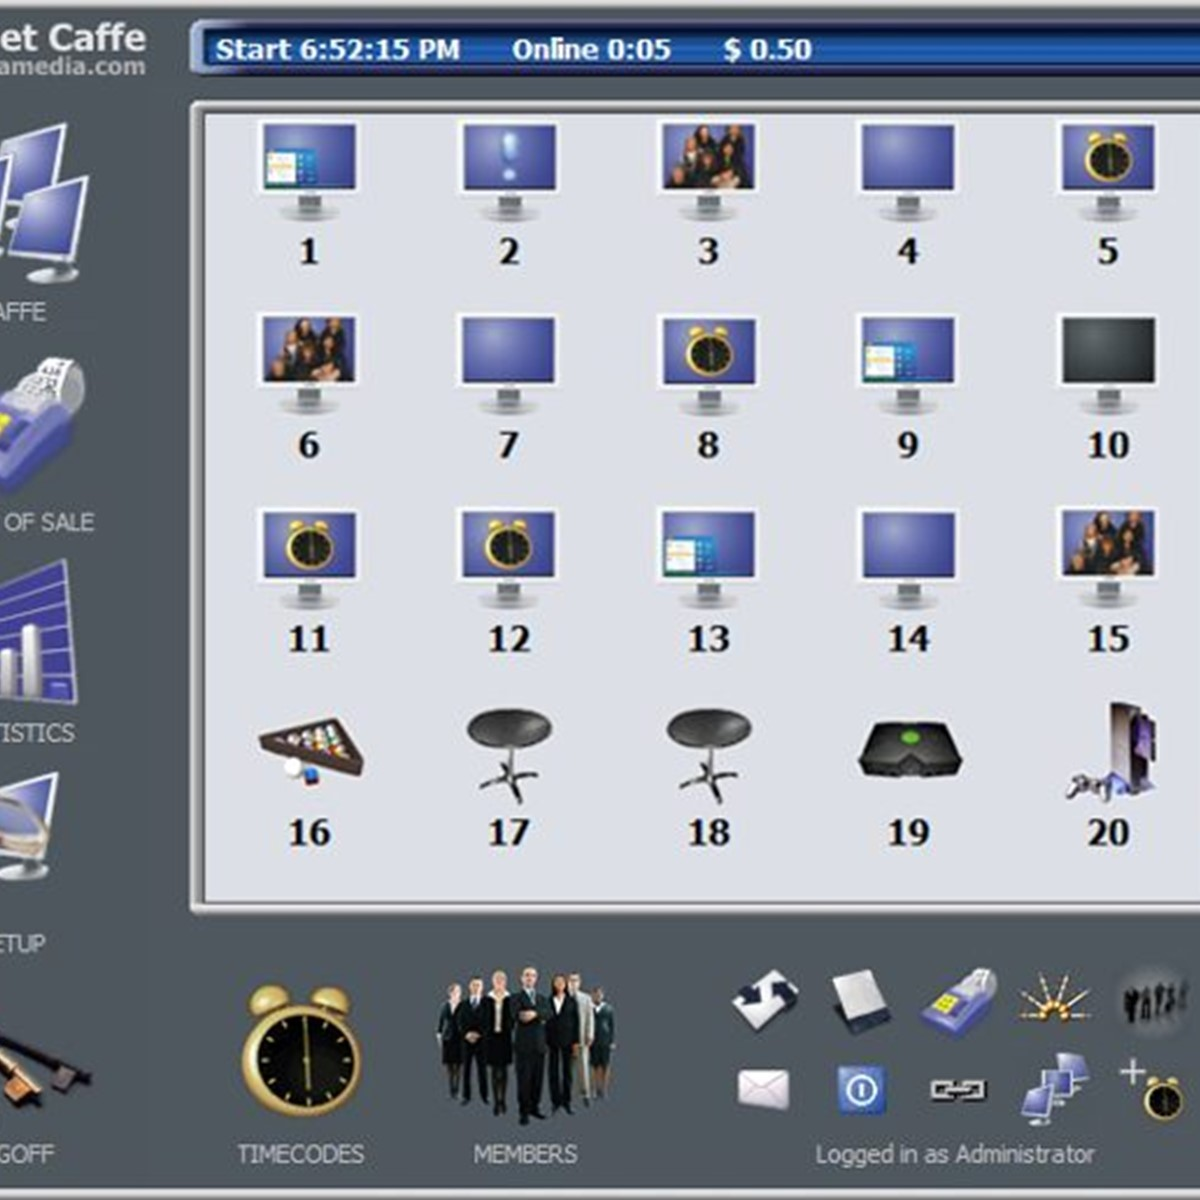 Internet Cafe Utilities